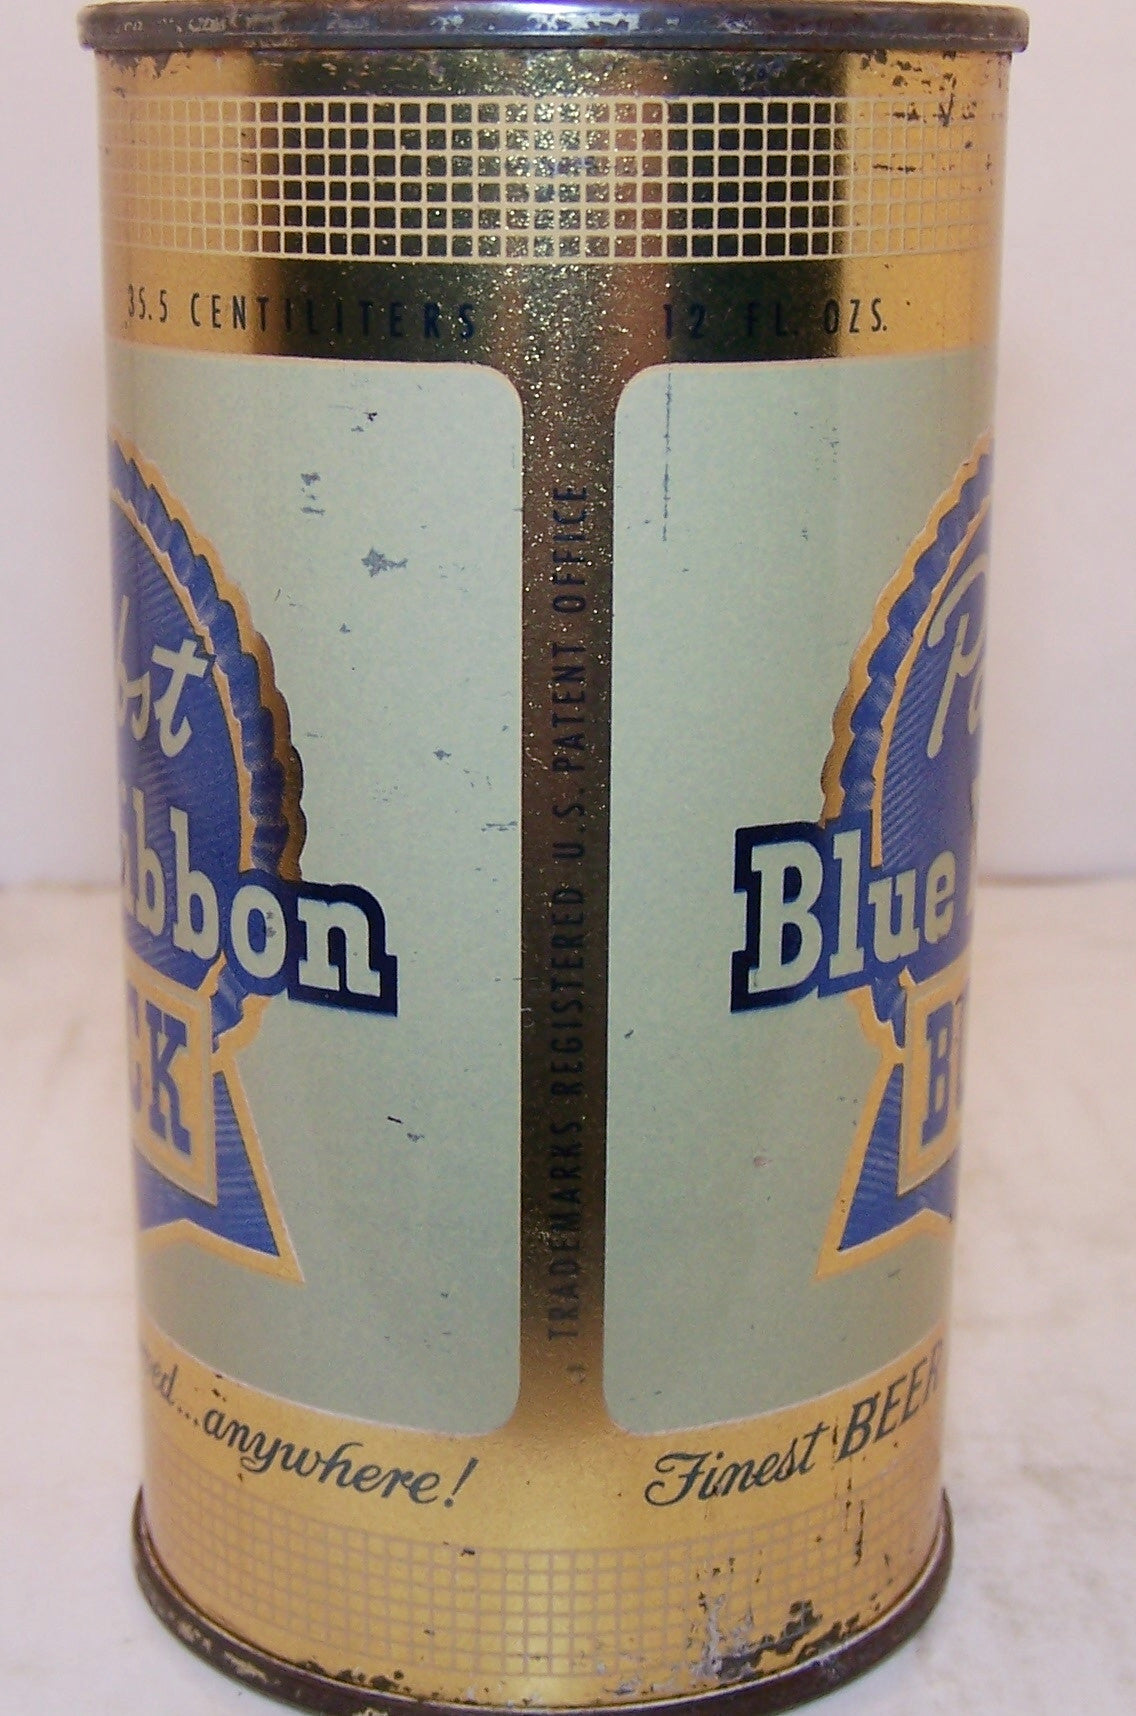 Pabst Blue Ribbon Bock, USBC 112-7 Grade 1/1- Sold 11/25/14